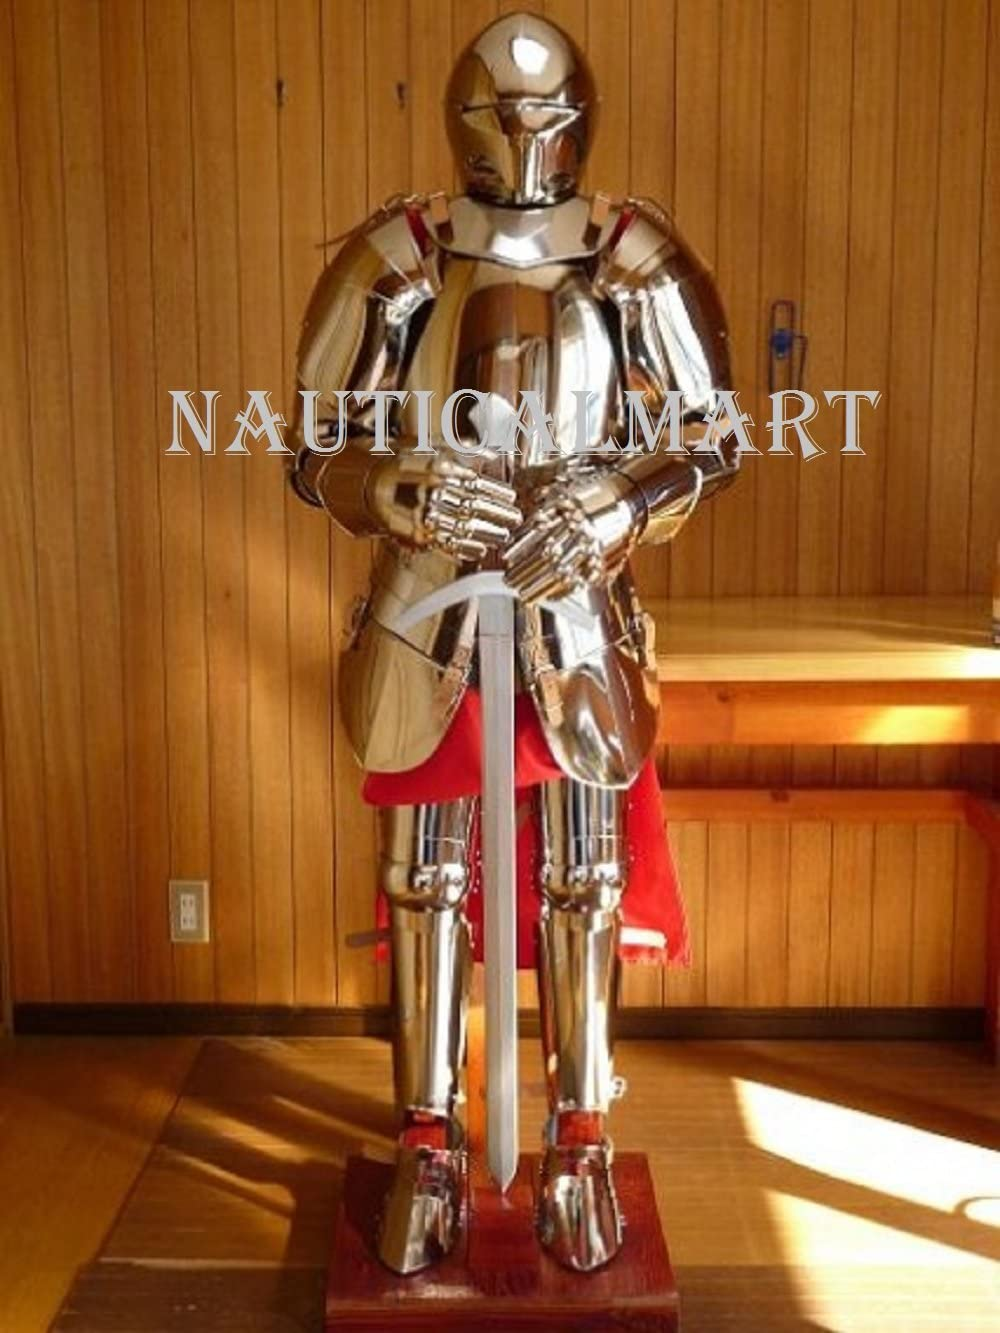 Popular brand NauticalMart Wearable Knight Close Suit Armor Reenactment of Cos Max 49% OFF